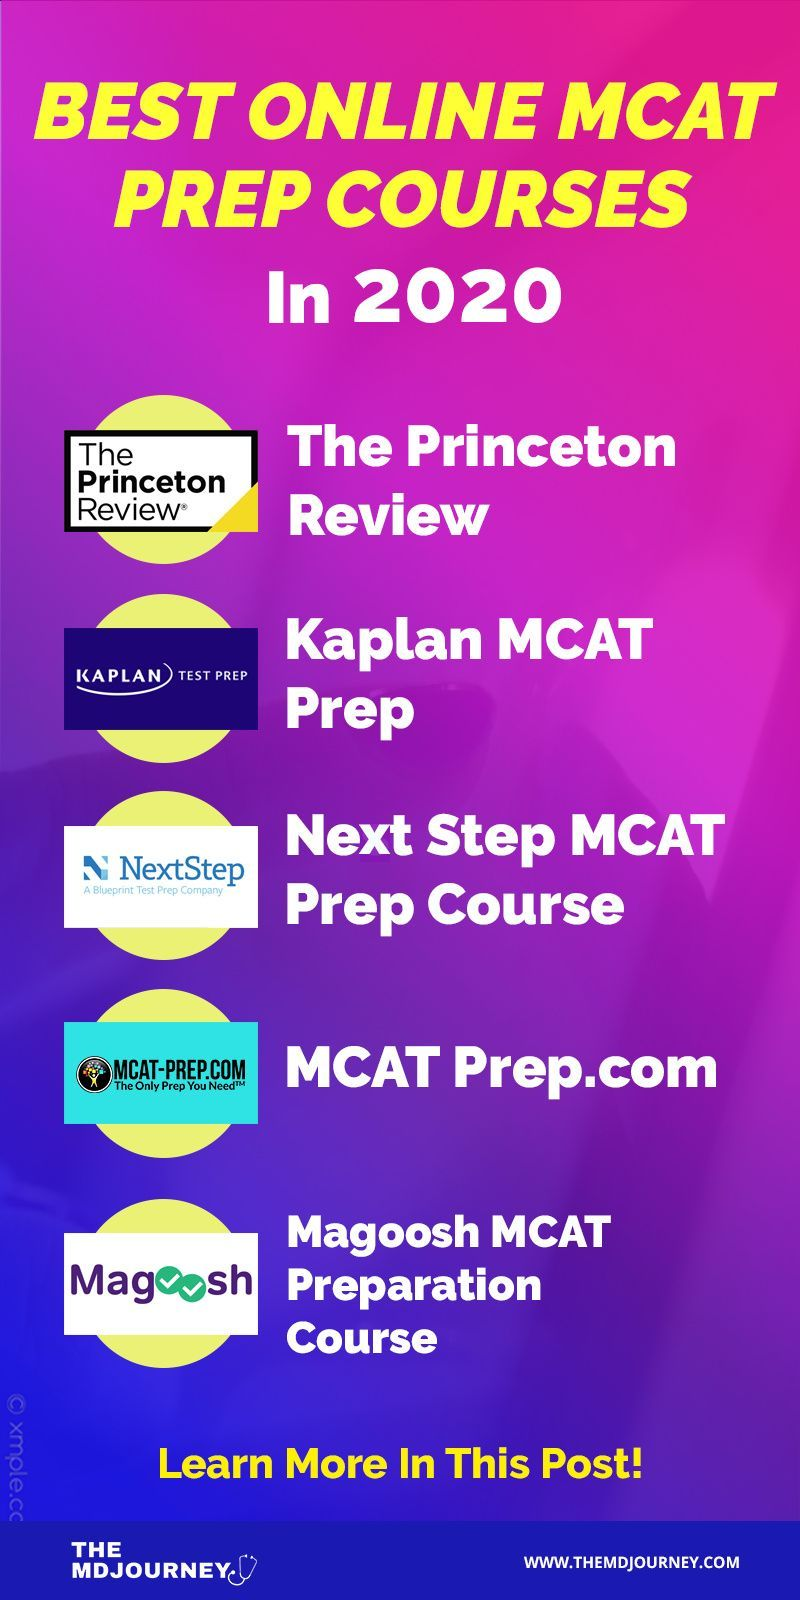 Best prep course for mcat top courses in 2020